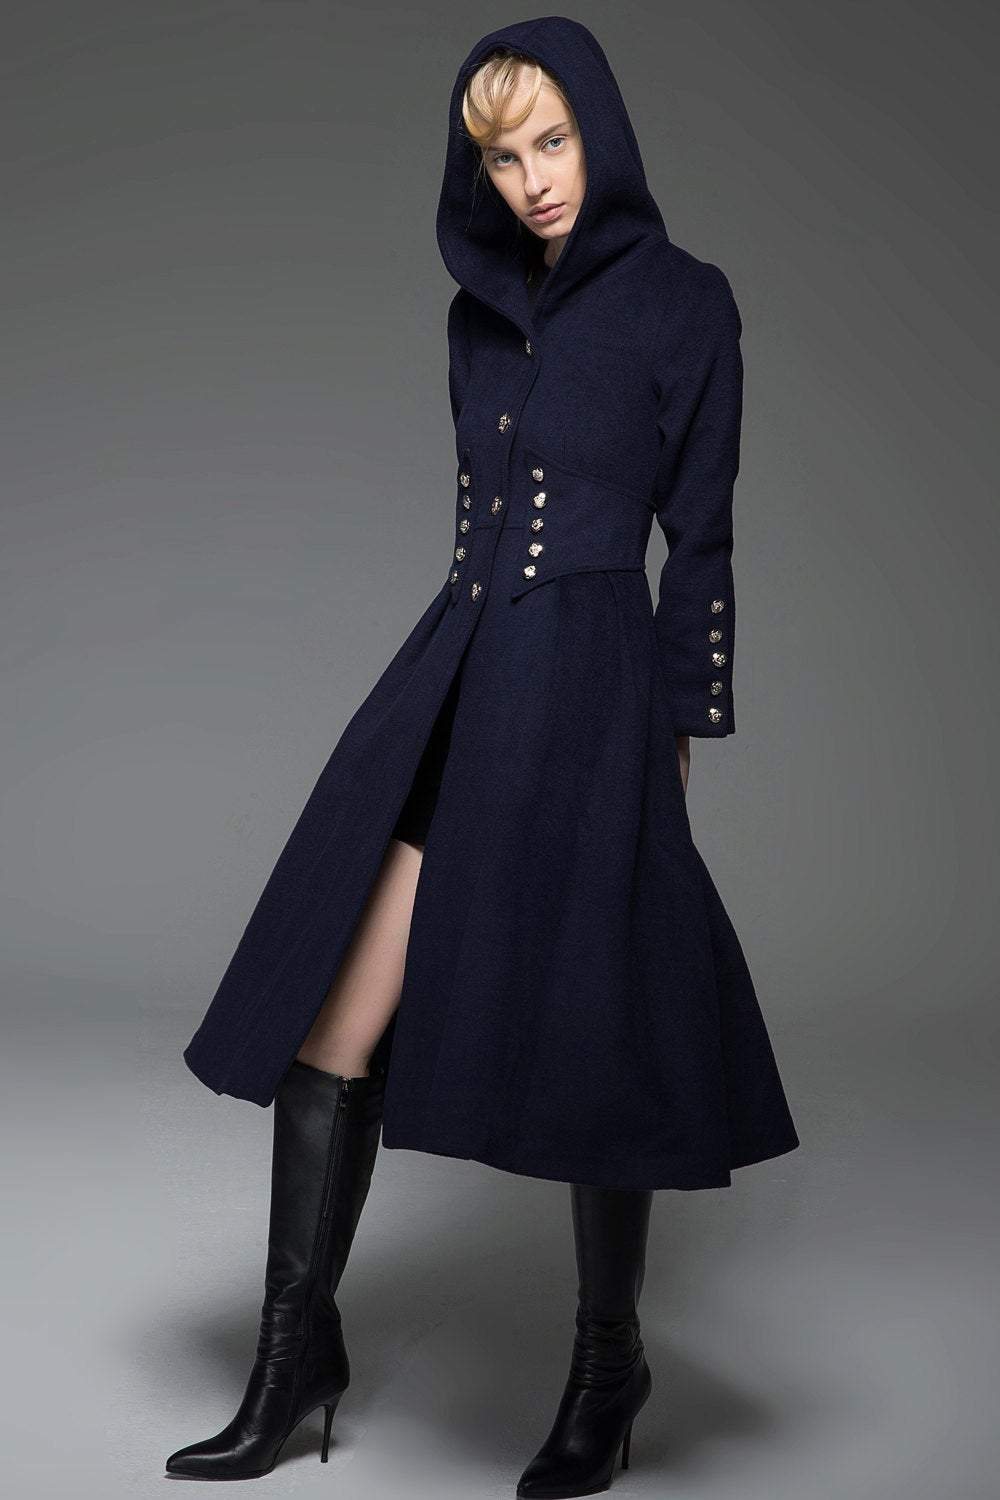 Navy Military Style Coat - Long Modern Dark Blue Hooded Winter Wool Designer Coat with Pockets and Button Detail C739